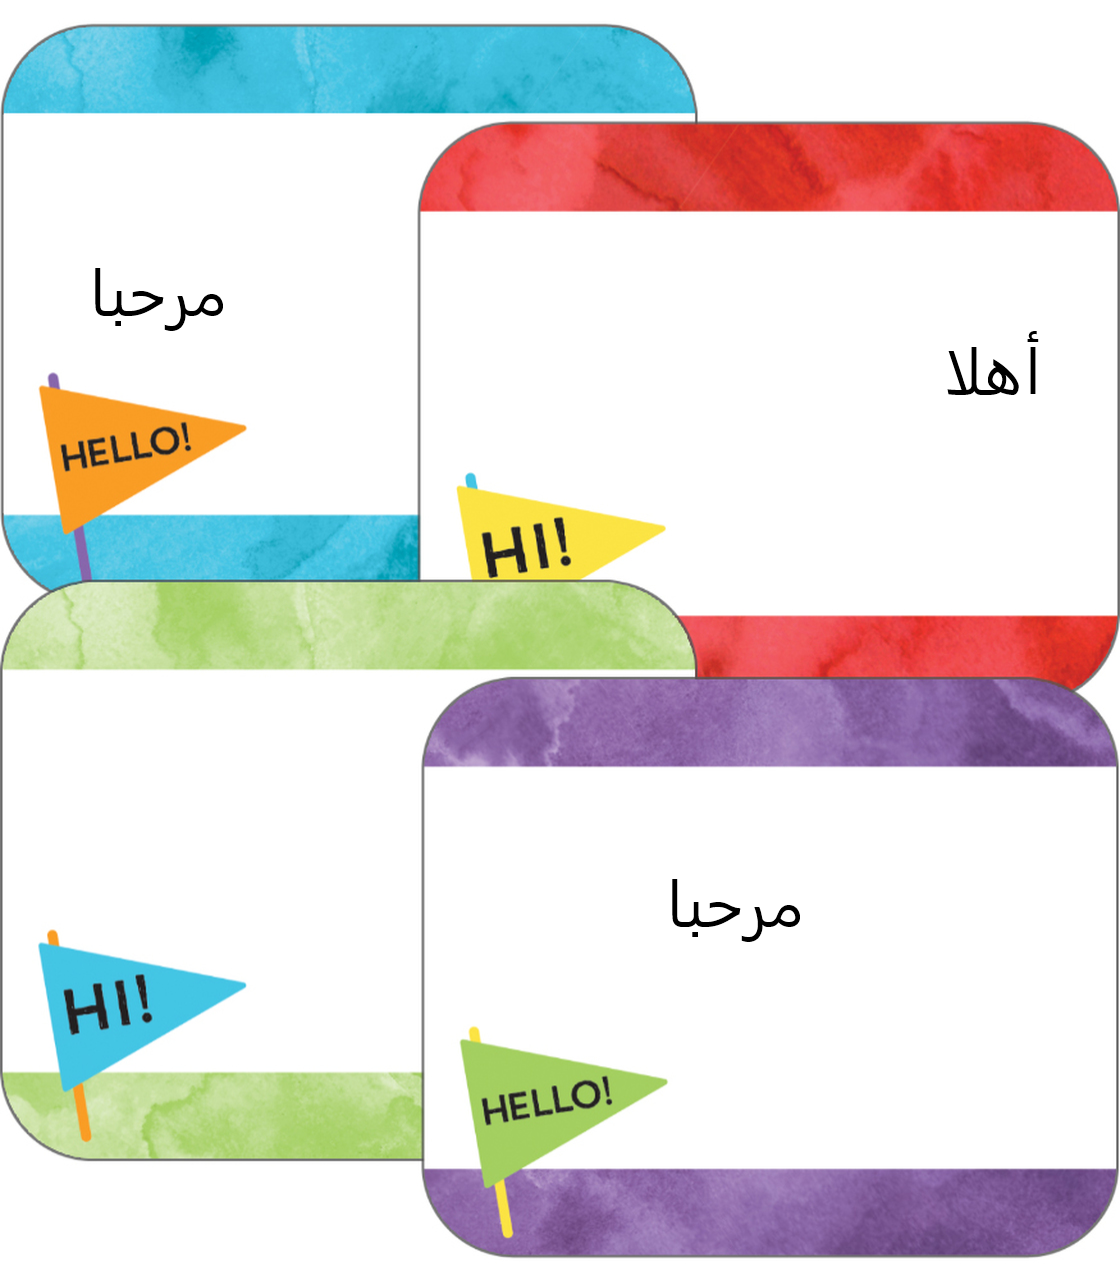 Arabic Available for Everyone